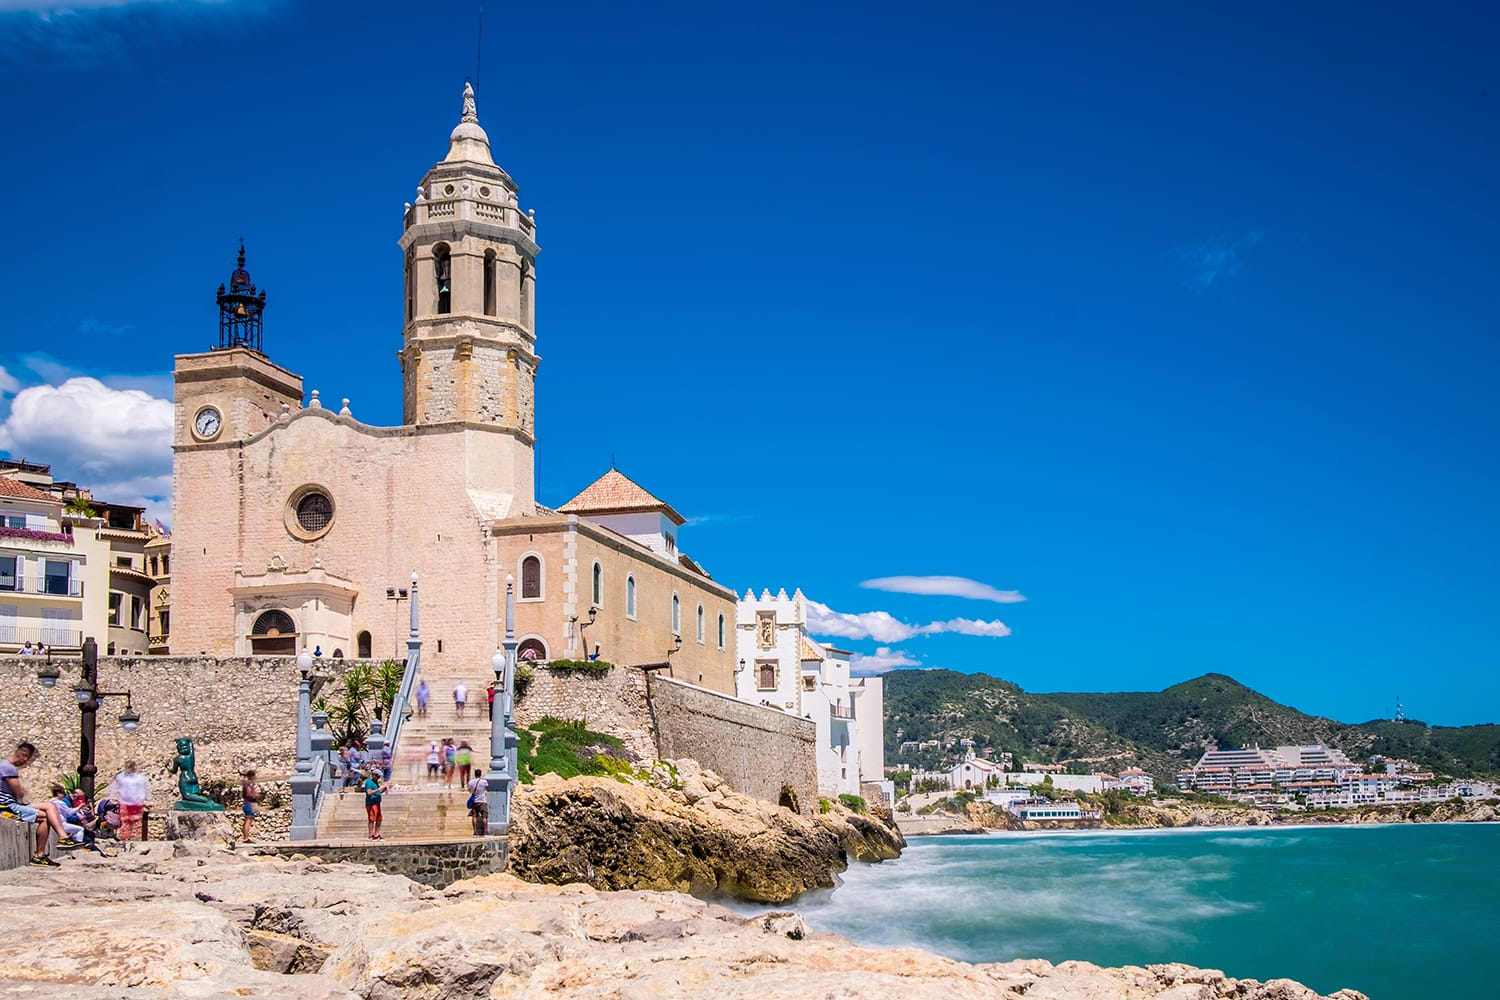 Church of St. Bartomeu & St. Tecla in Sitges, Spain